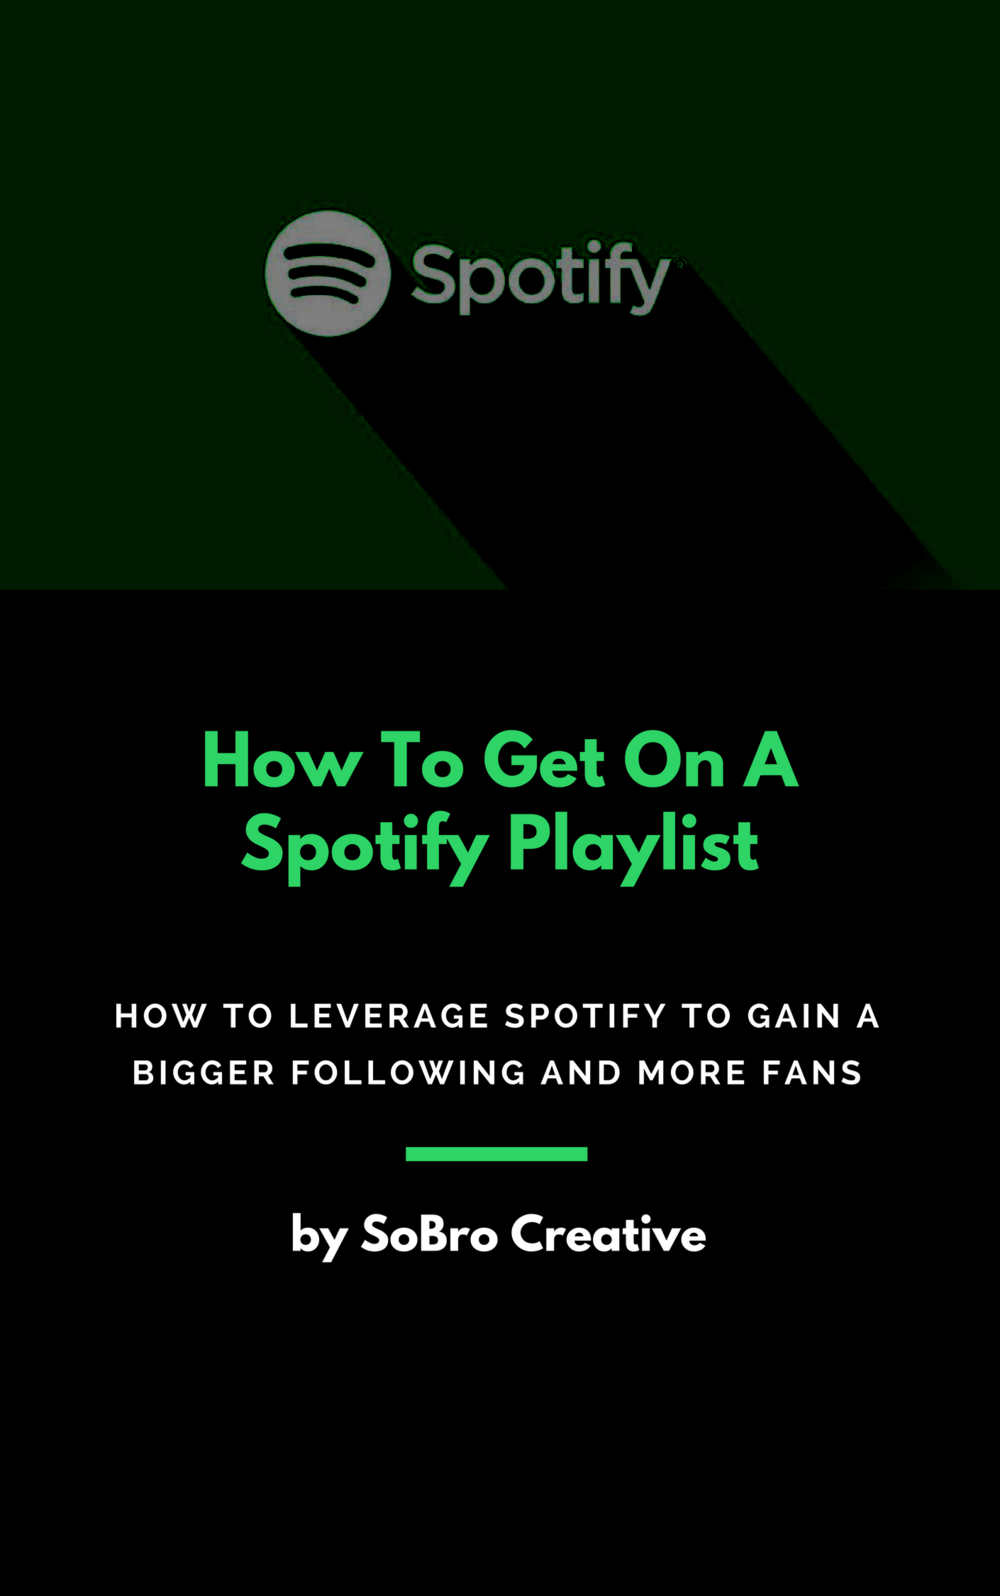 How To Get On A Spotify Playlist